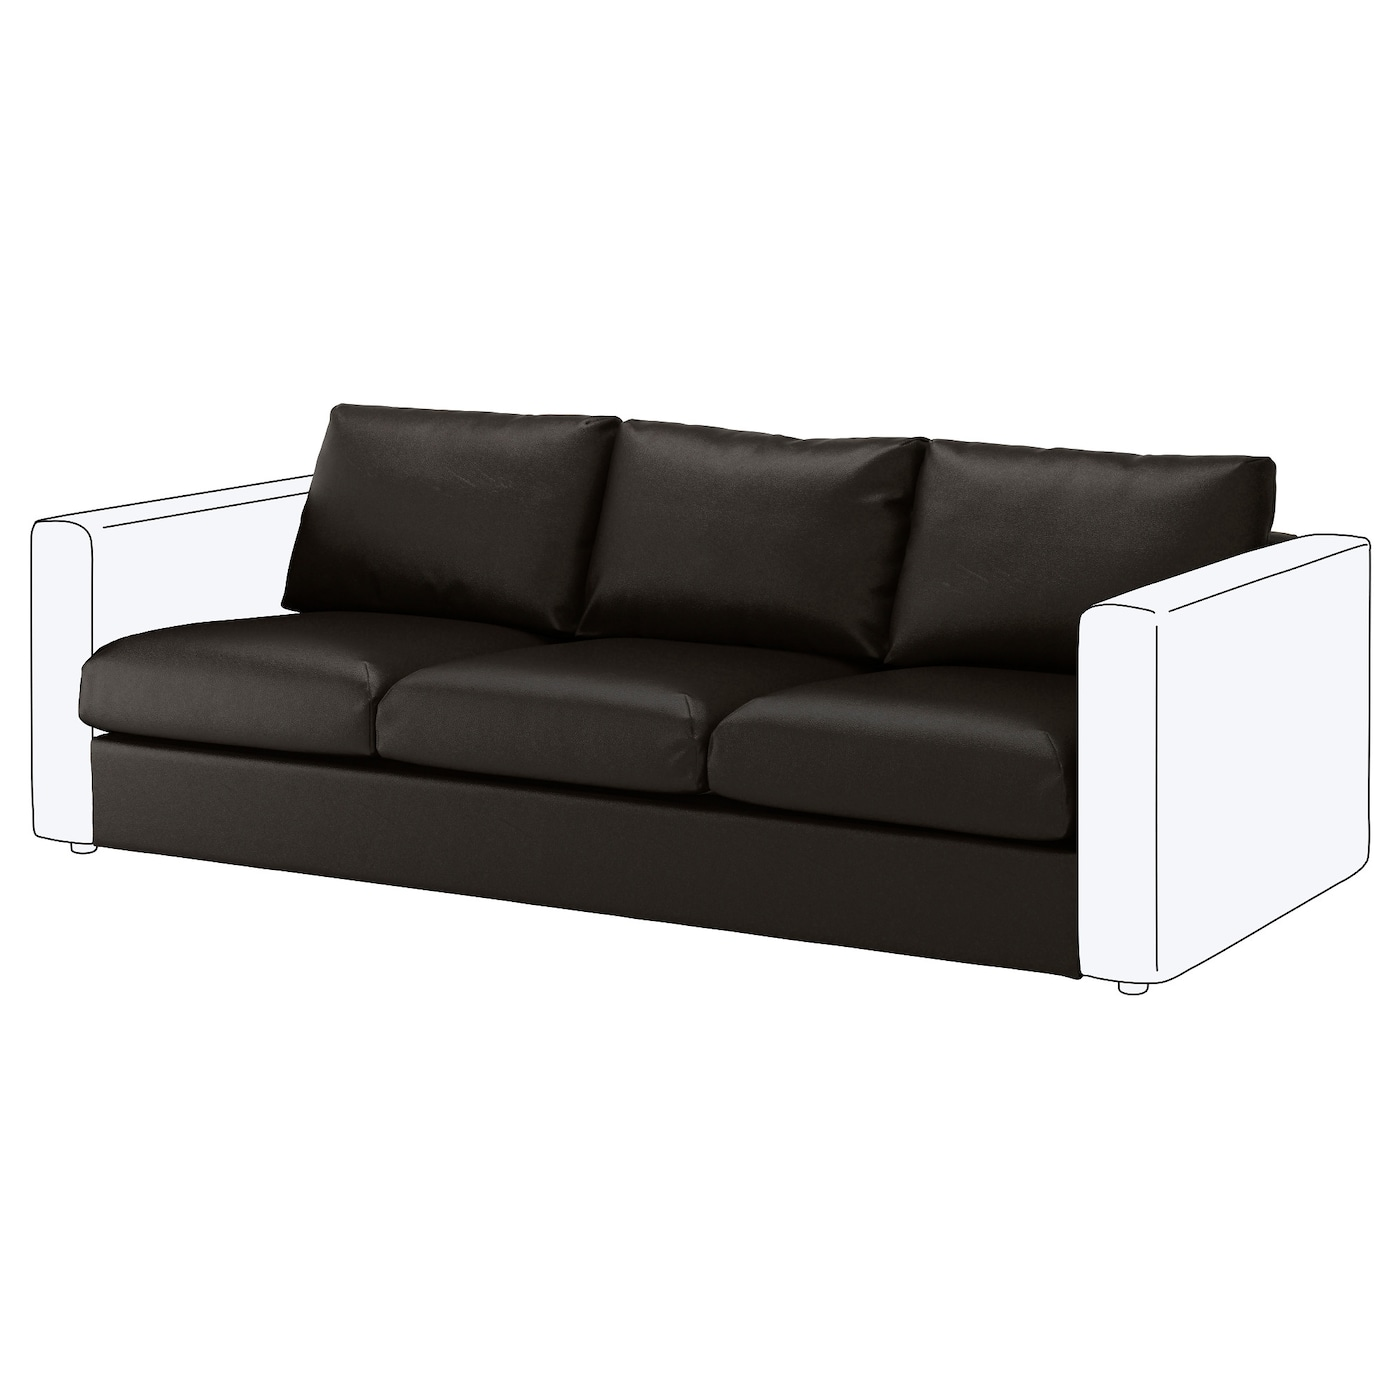 IKEA VIMLE 3-seat section